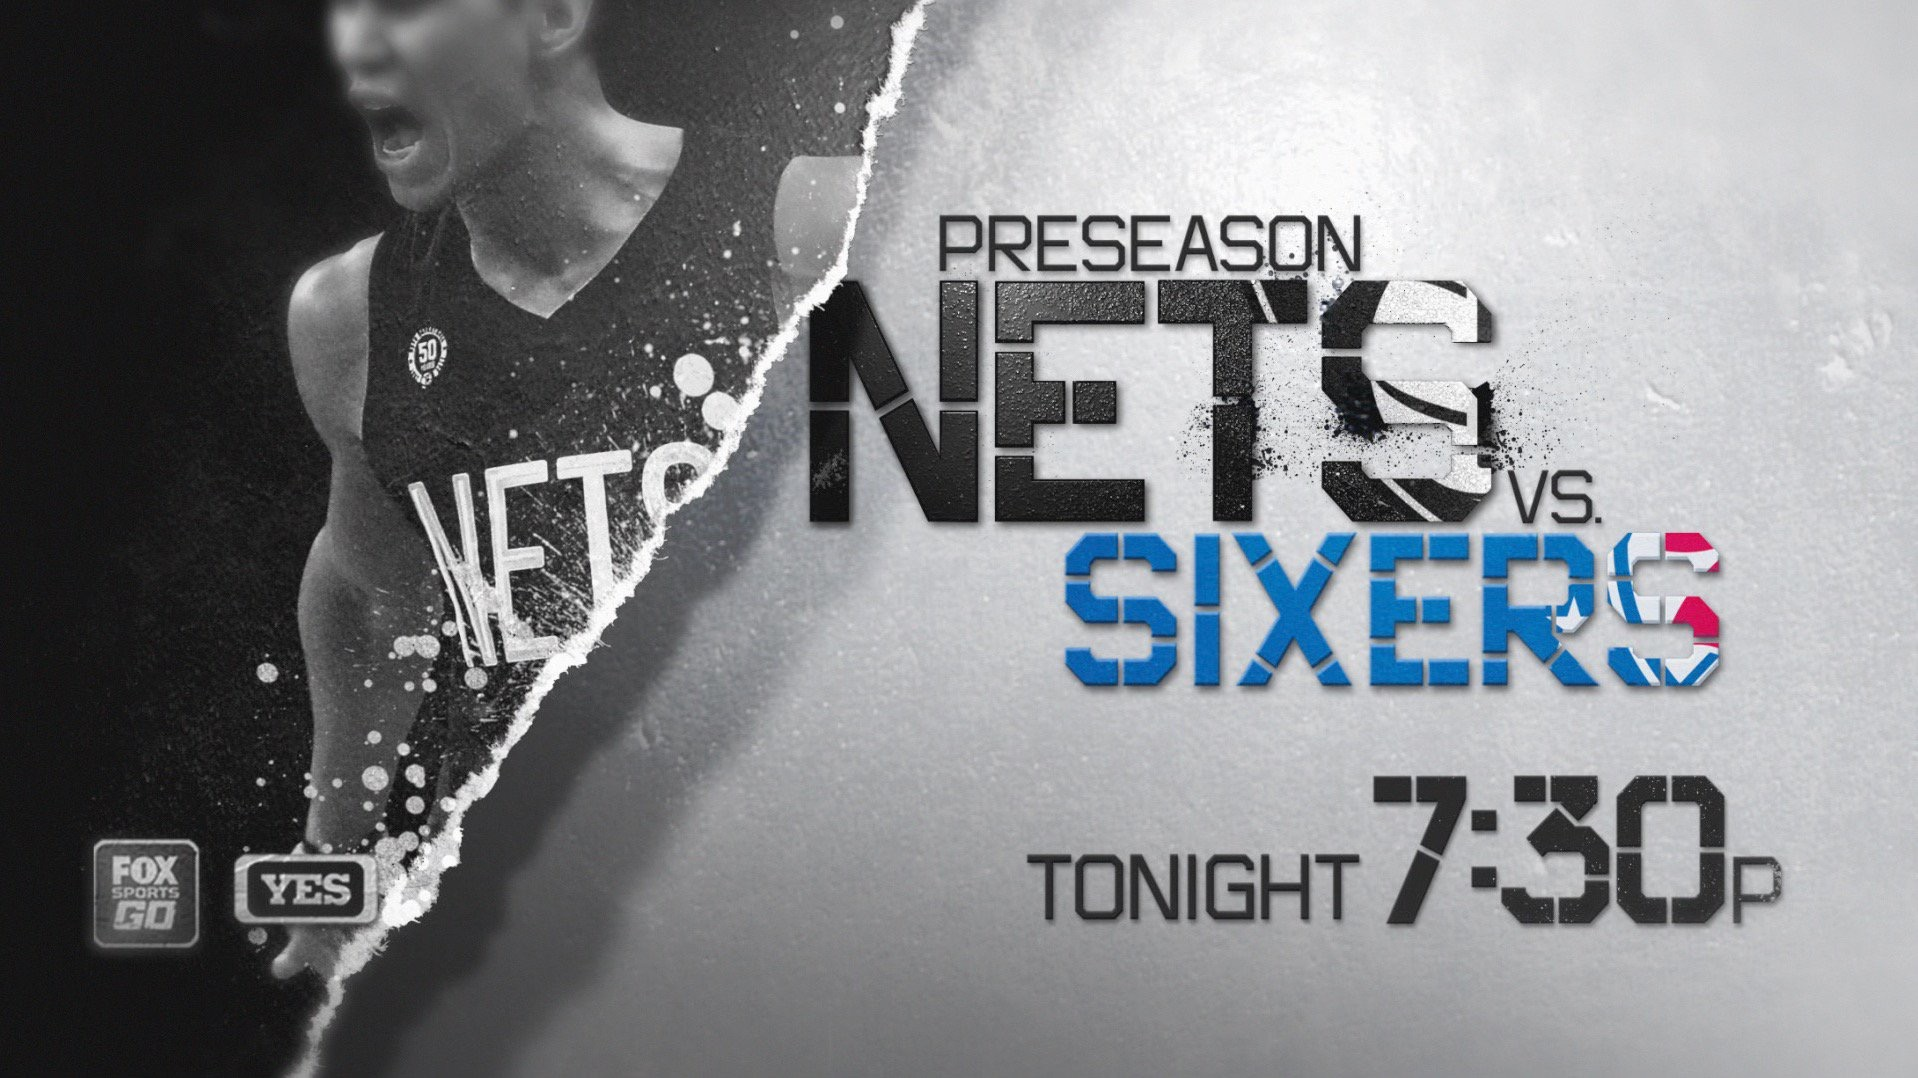 92b69150fac Preseason4 Brooklyn Nets vs Philadelphia 76ers - Jeremy Lin Portal